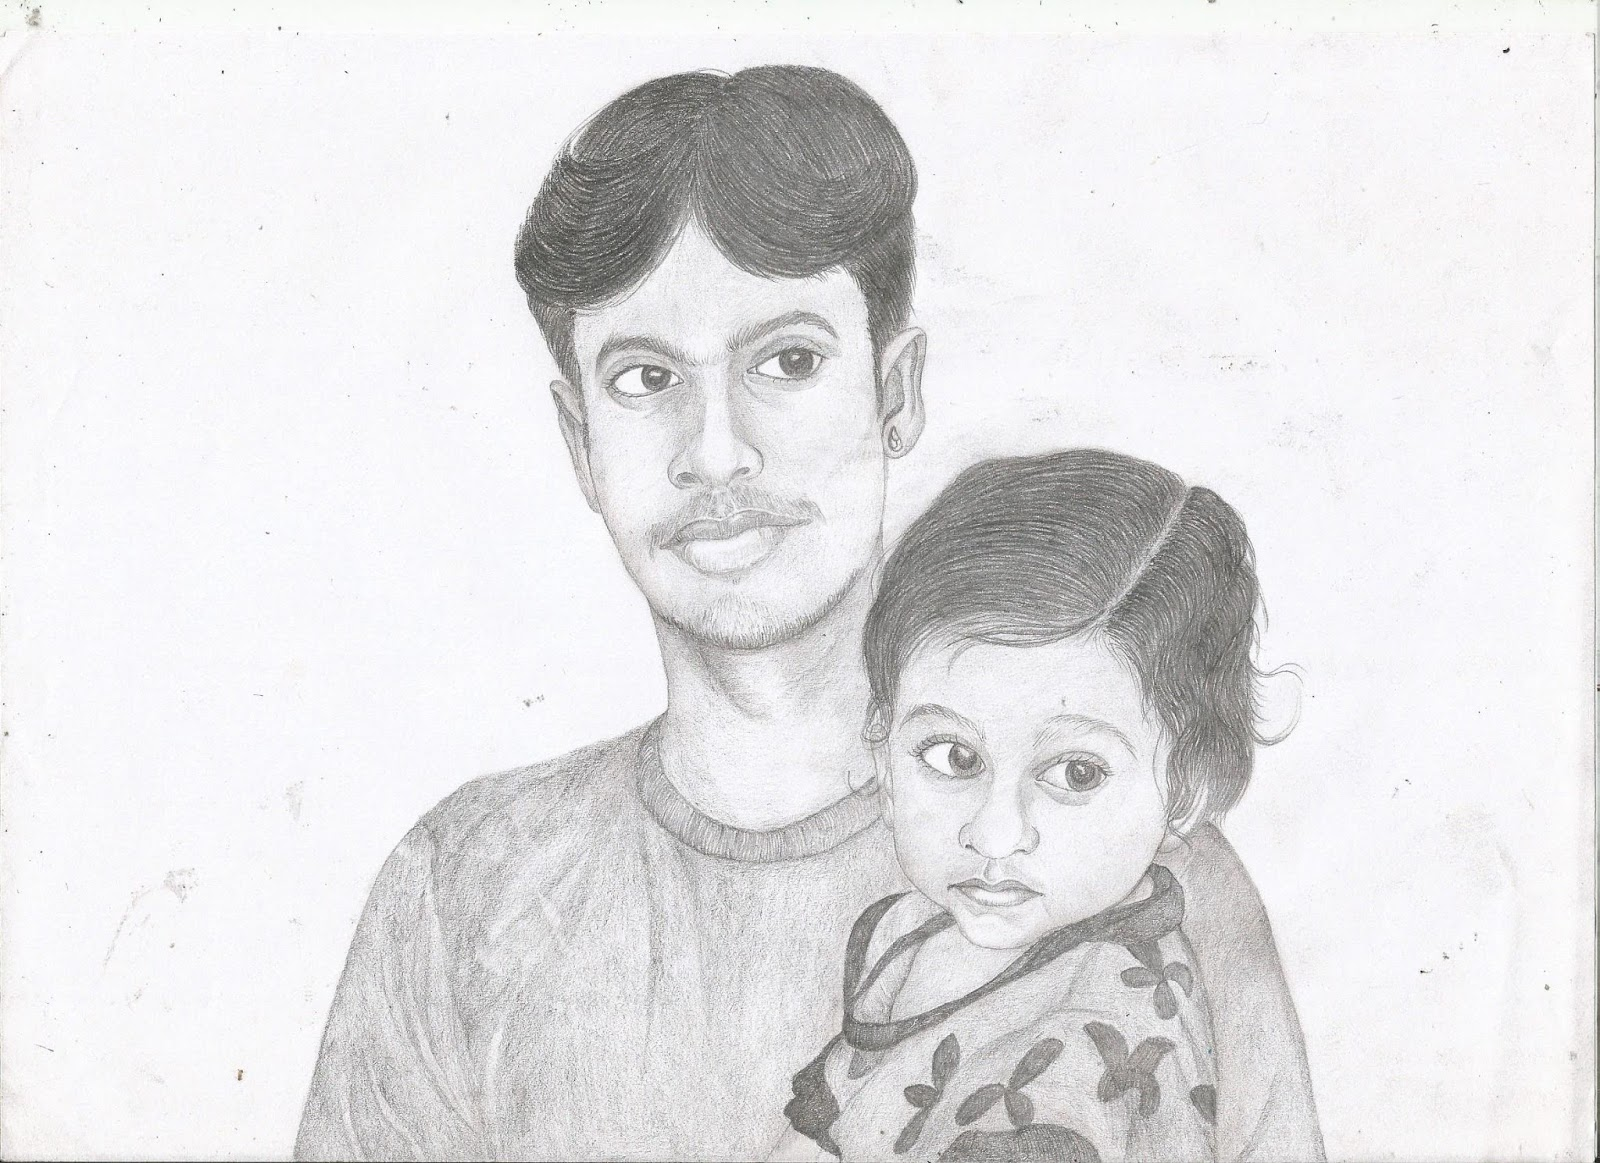 Jackhi pencil drawing indian boy pencil sketch